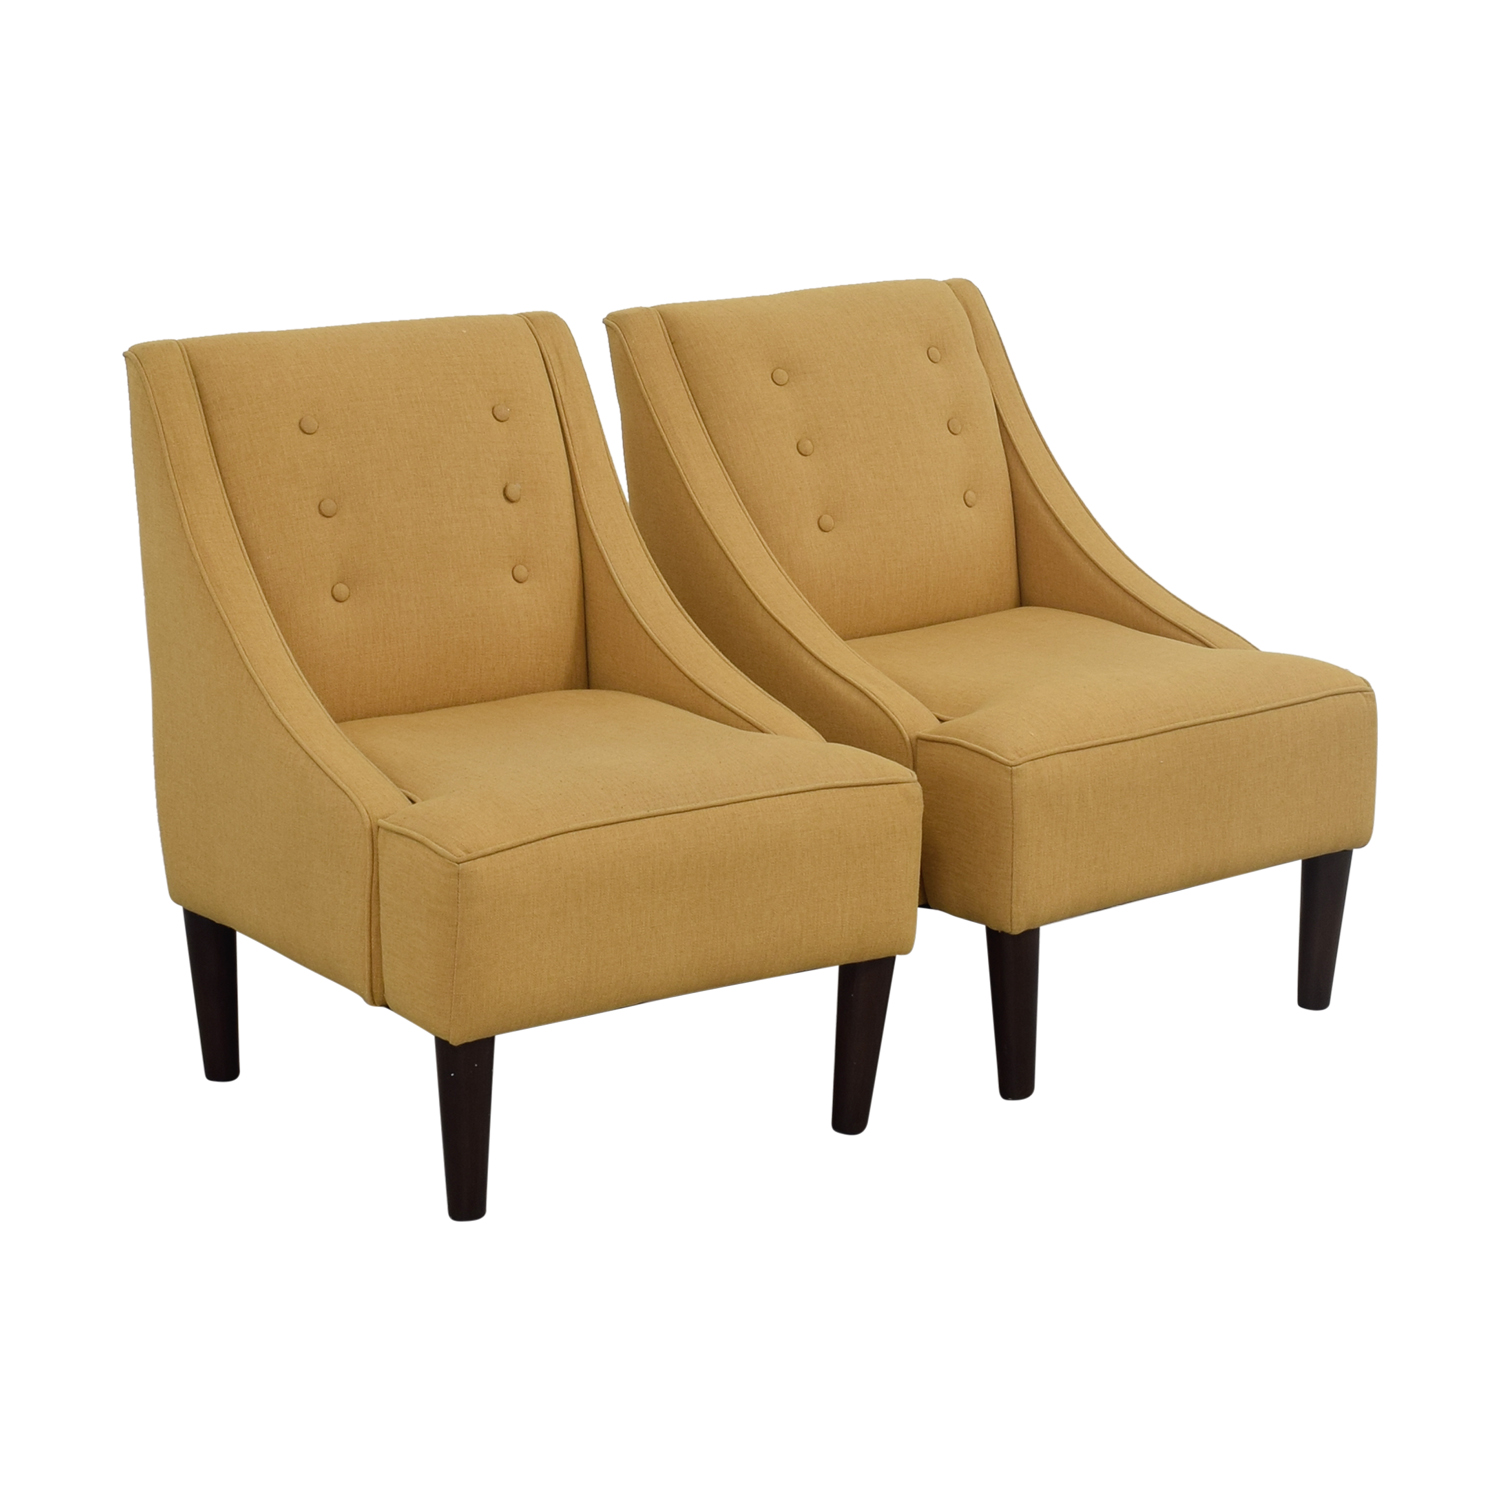 77 off thomas paul thomas paul mustard tufted accent chairs chairs. Black Bedroom Furniture Sets. Home Design Ideas